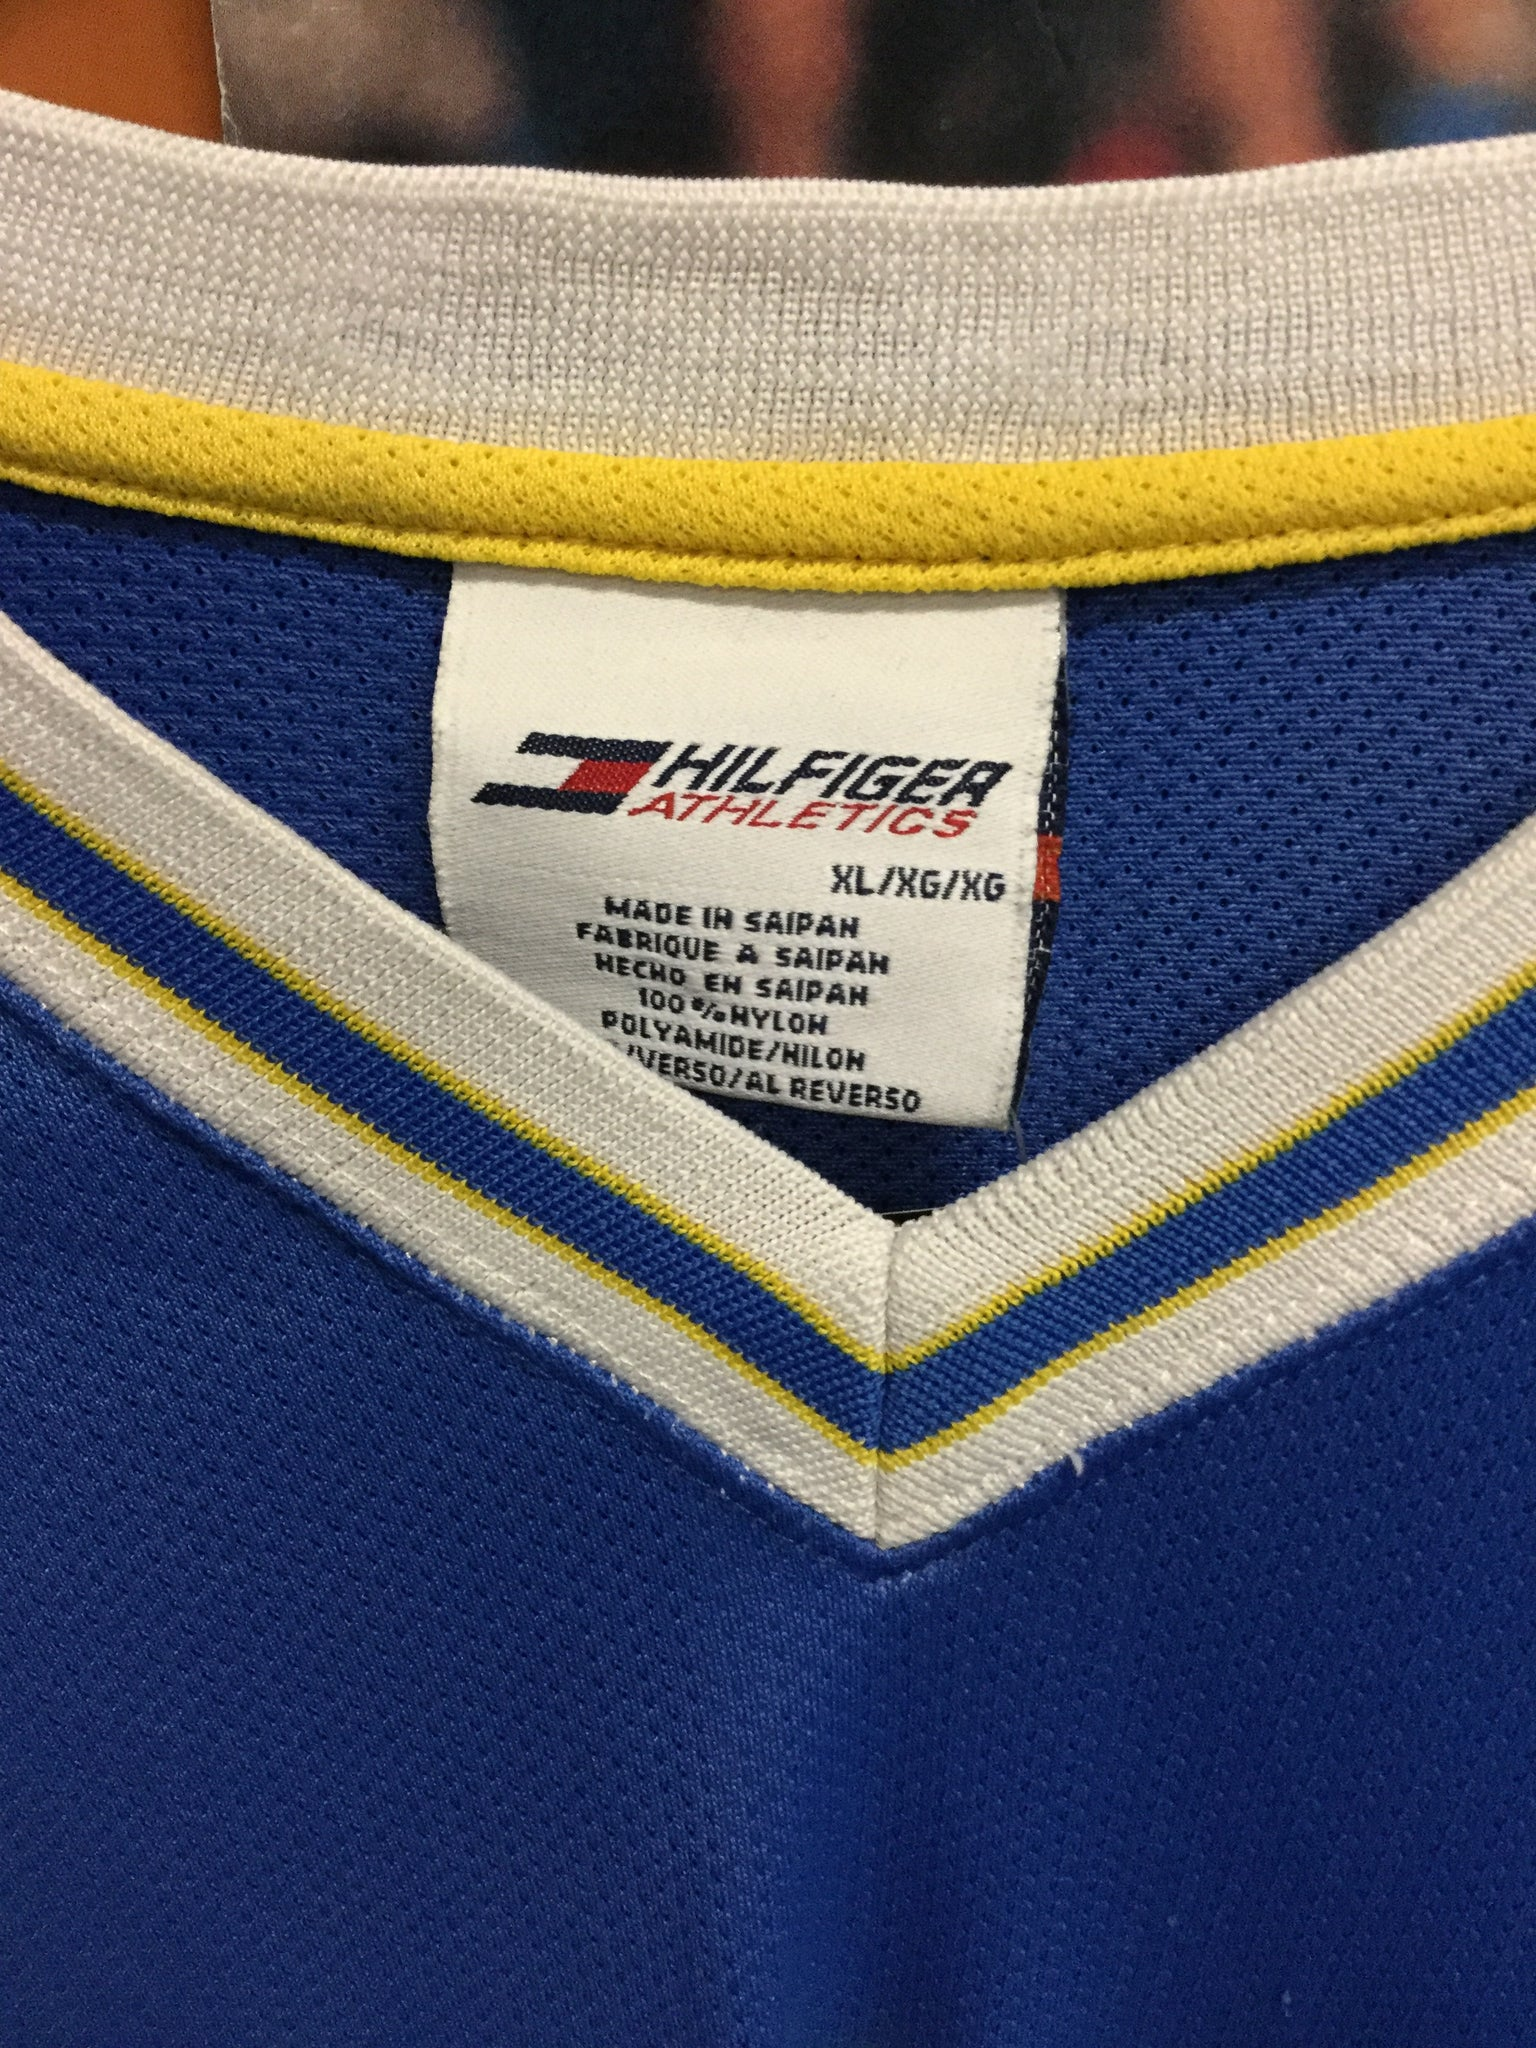 Tommy Hilfiger Soccer Jersey XL - Decades of dope